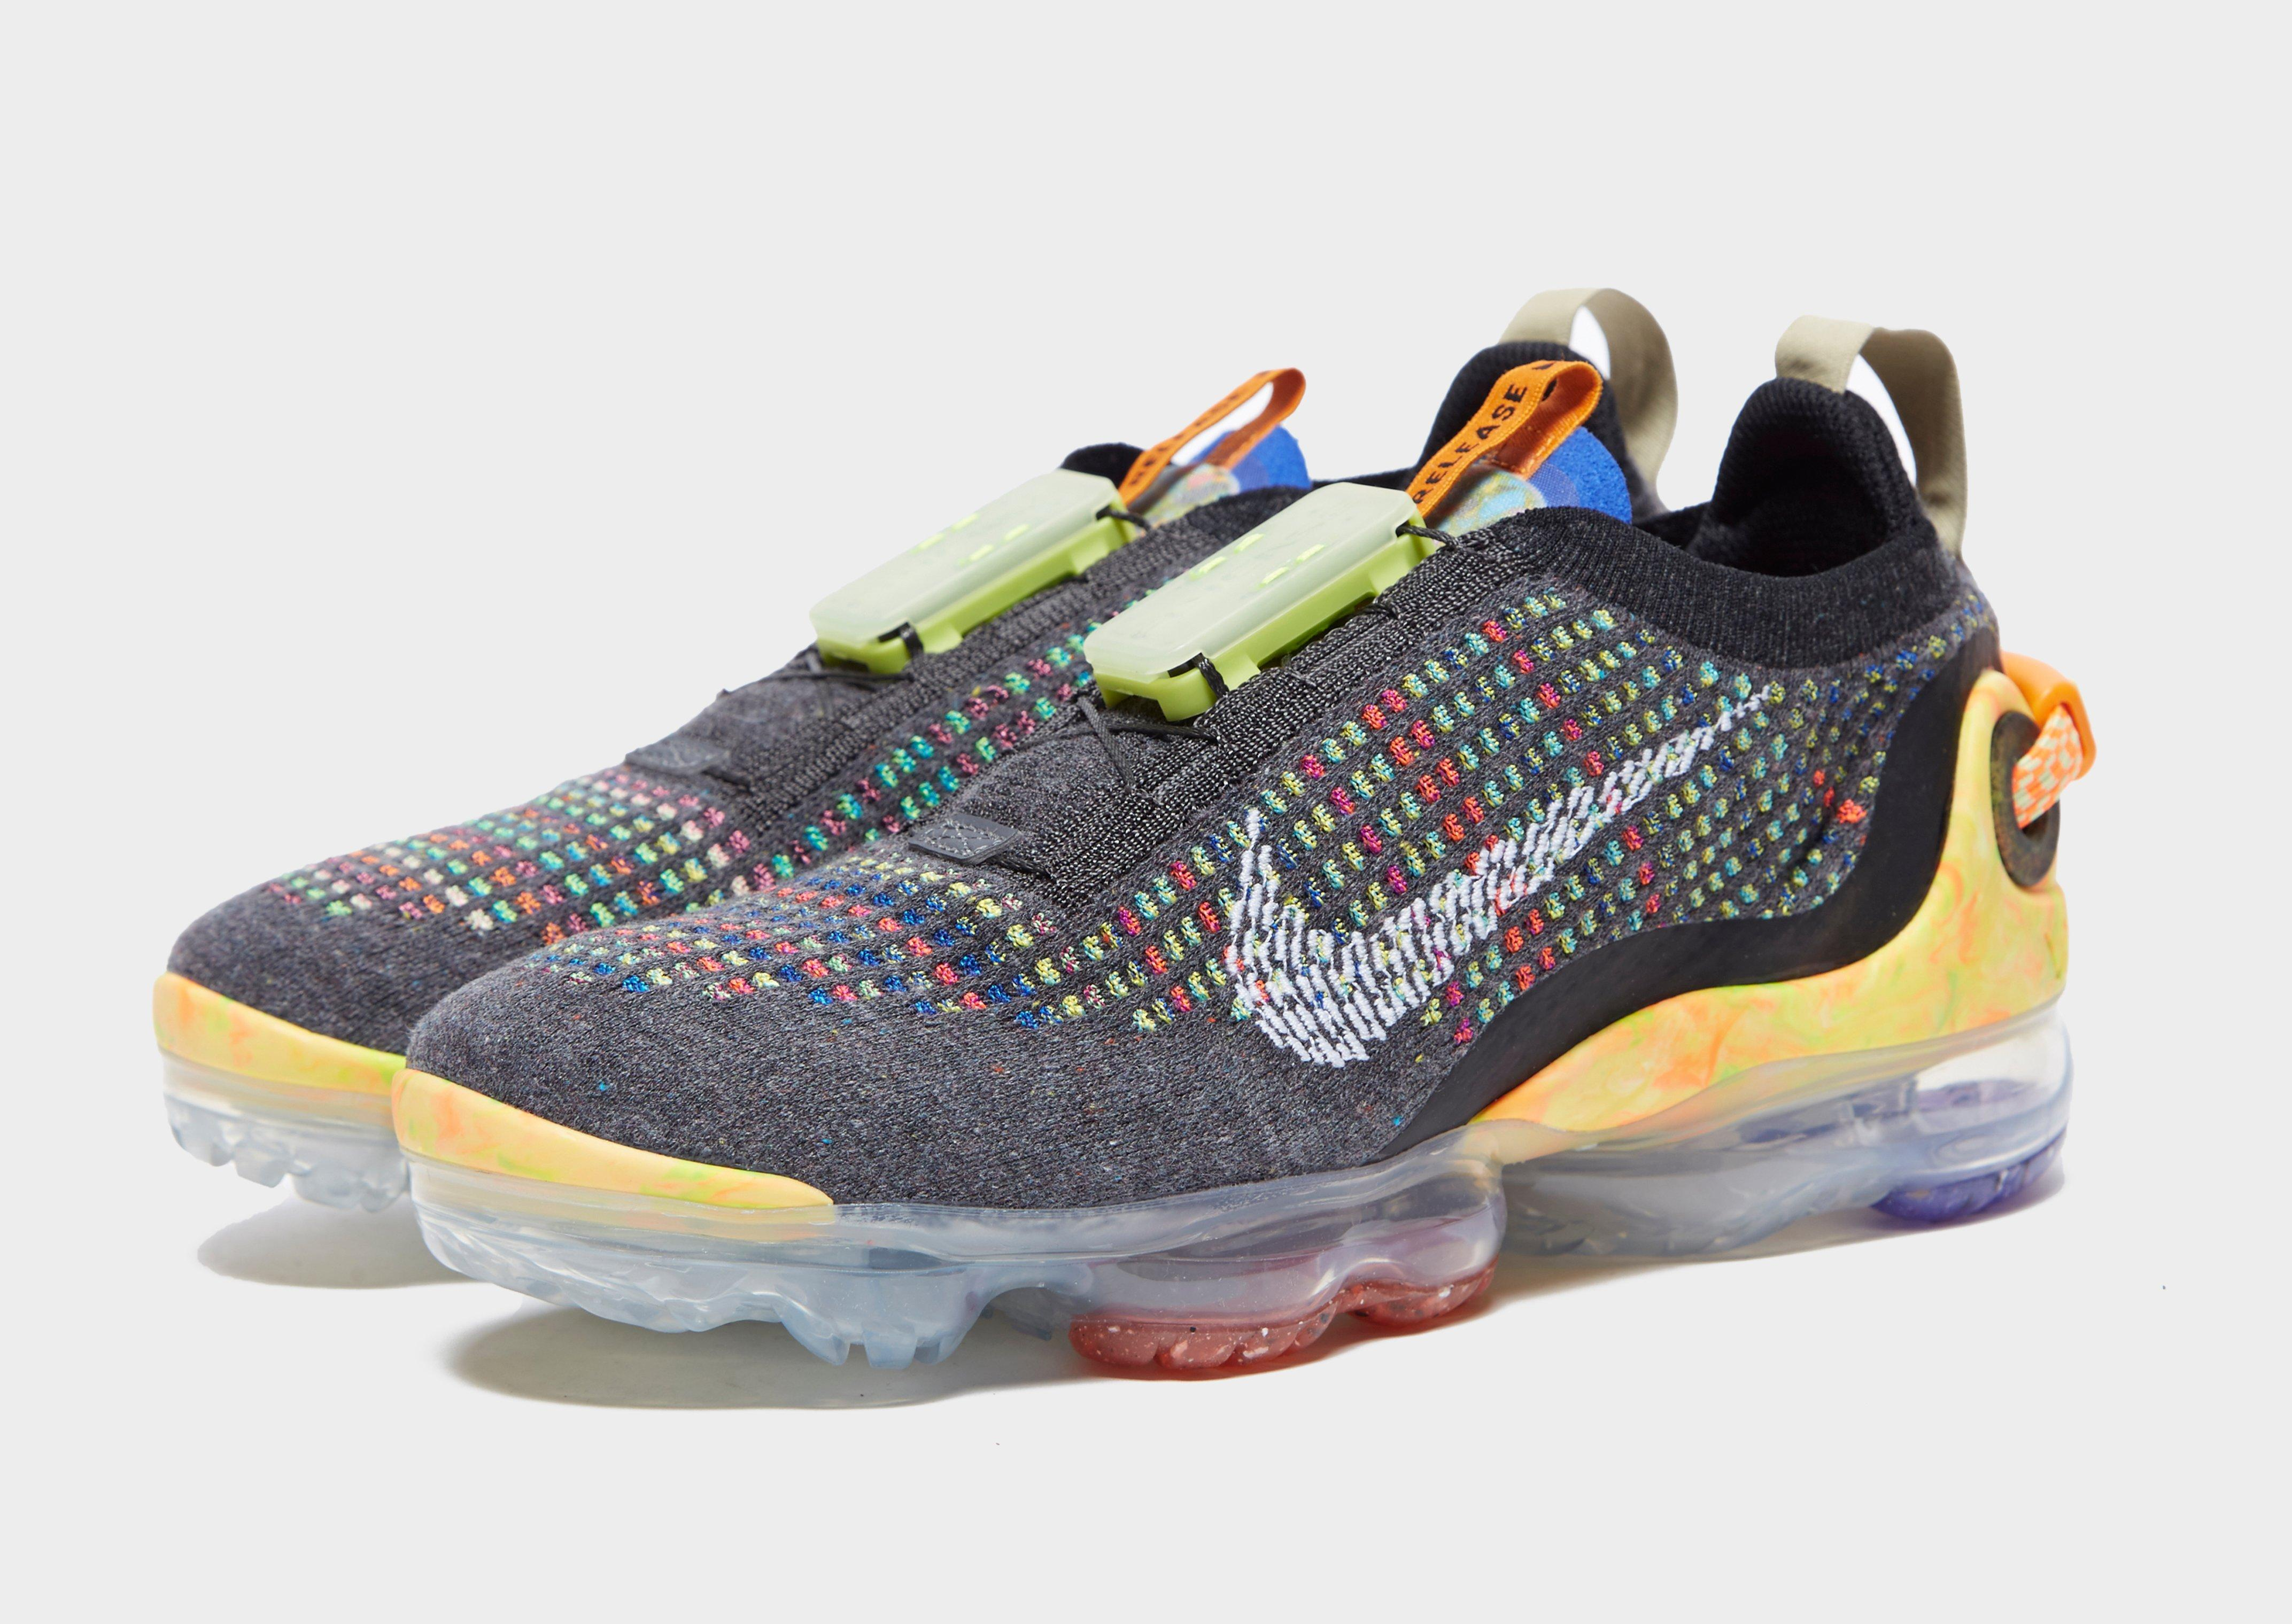 Nike Official Watch Tokyo Olympics Don t Note VaporMax 2020